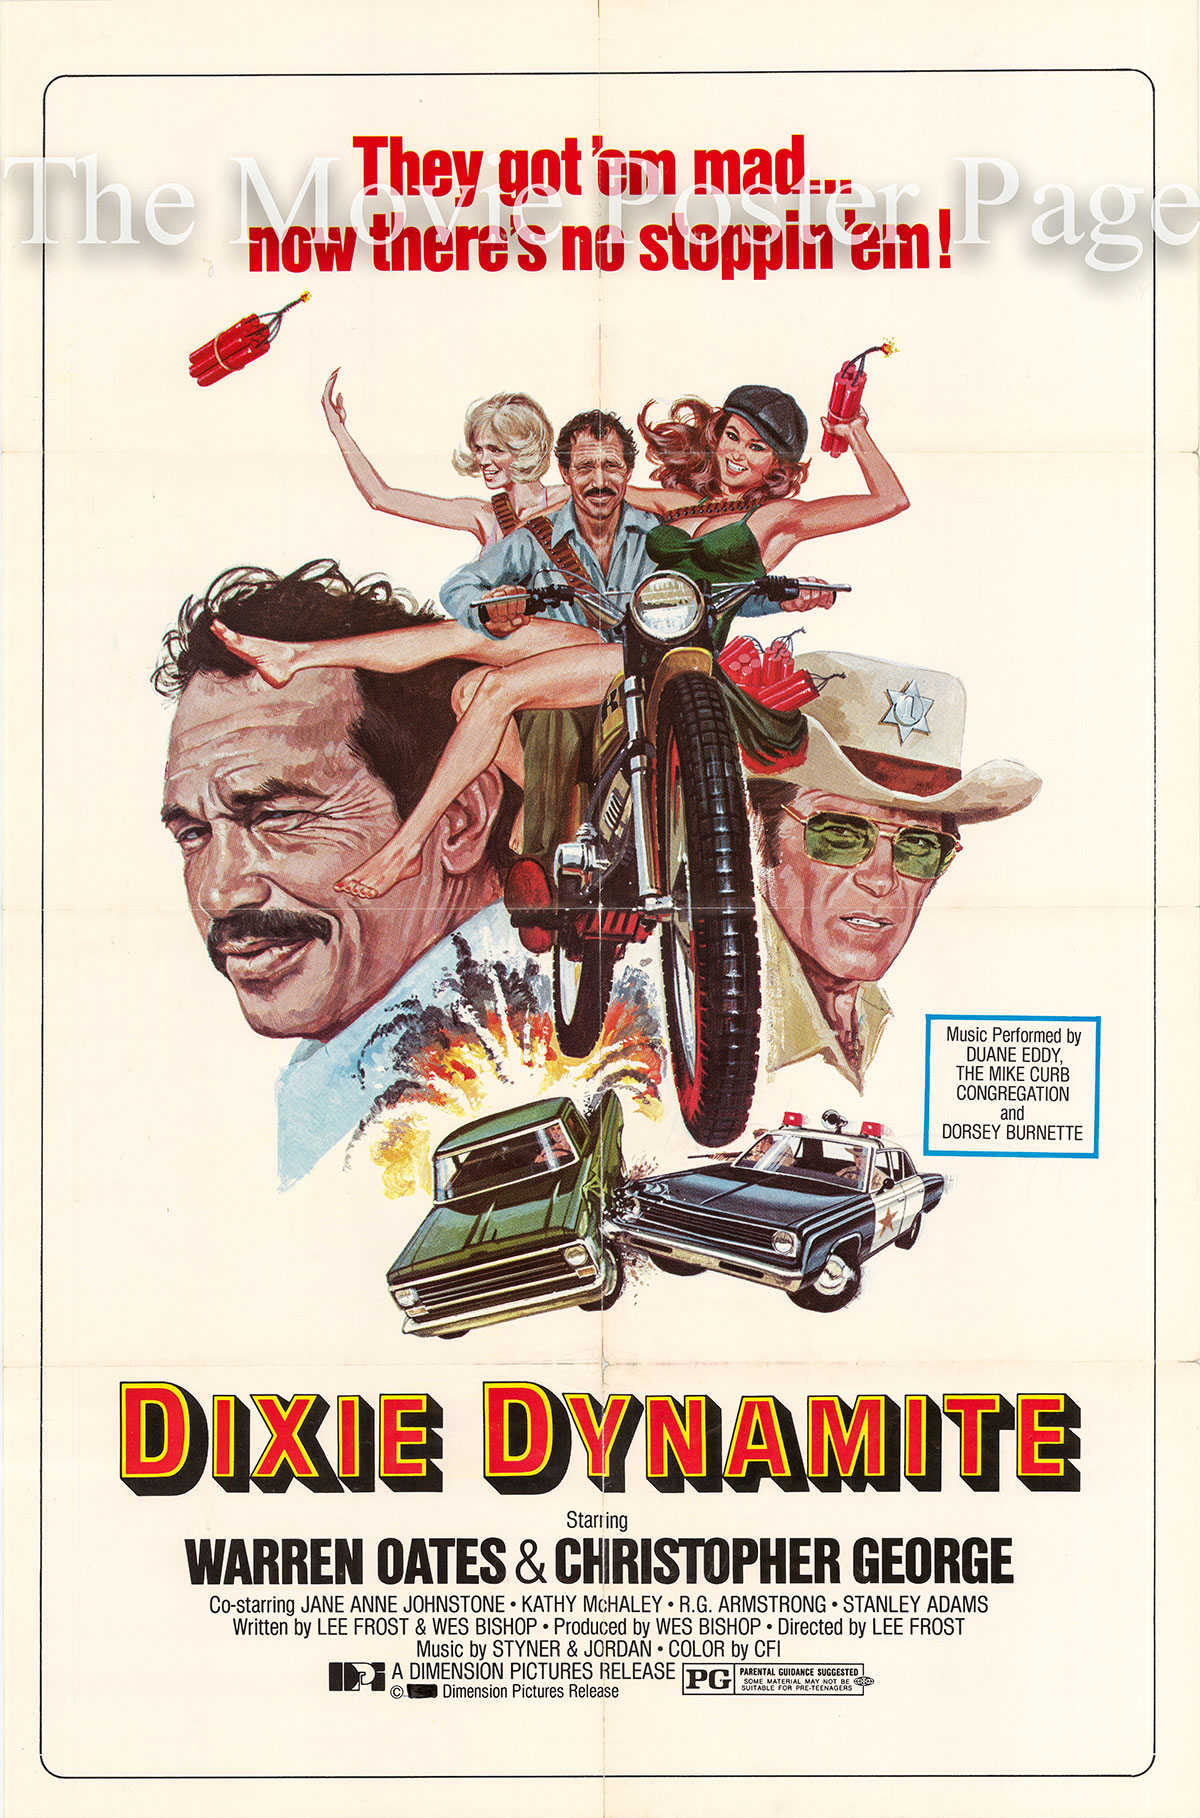 Pictured is a US one-sheet poster for the 1976 Lee Frost film Dixie Dynamite starring Warren Oates as Mack.